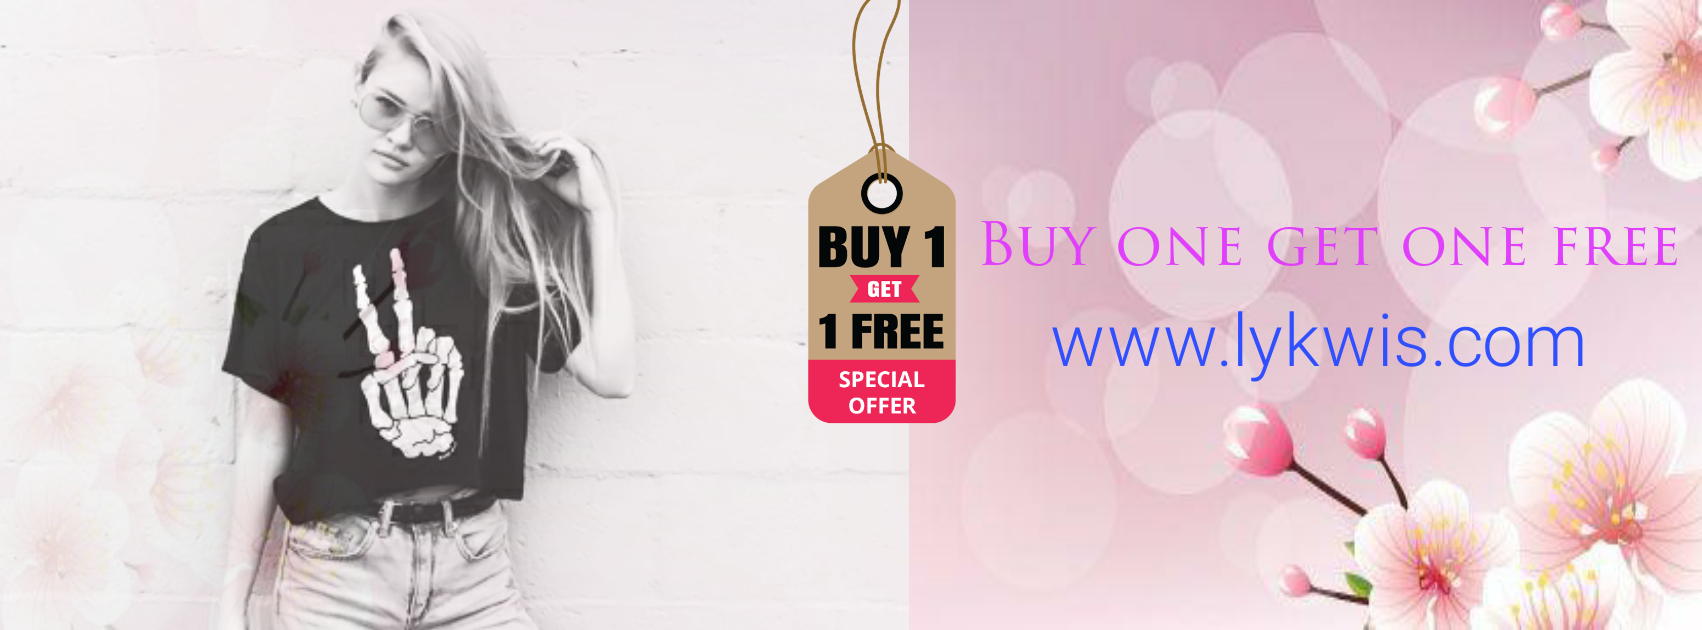 Buy one get one free!!!